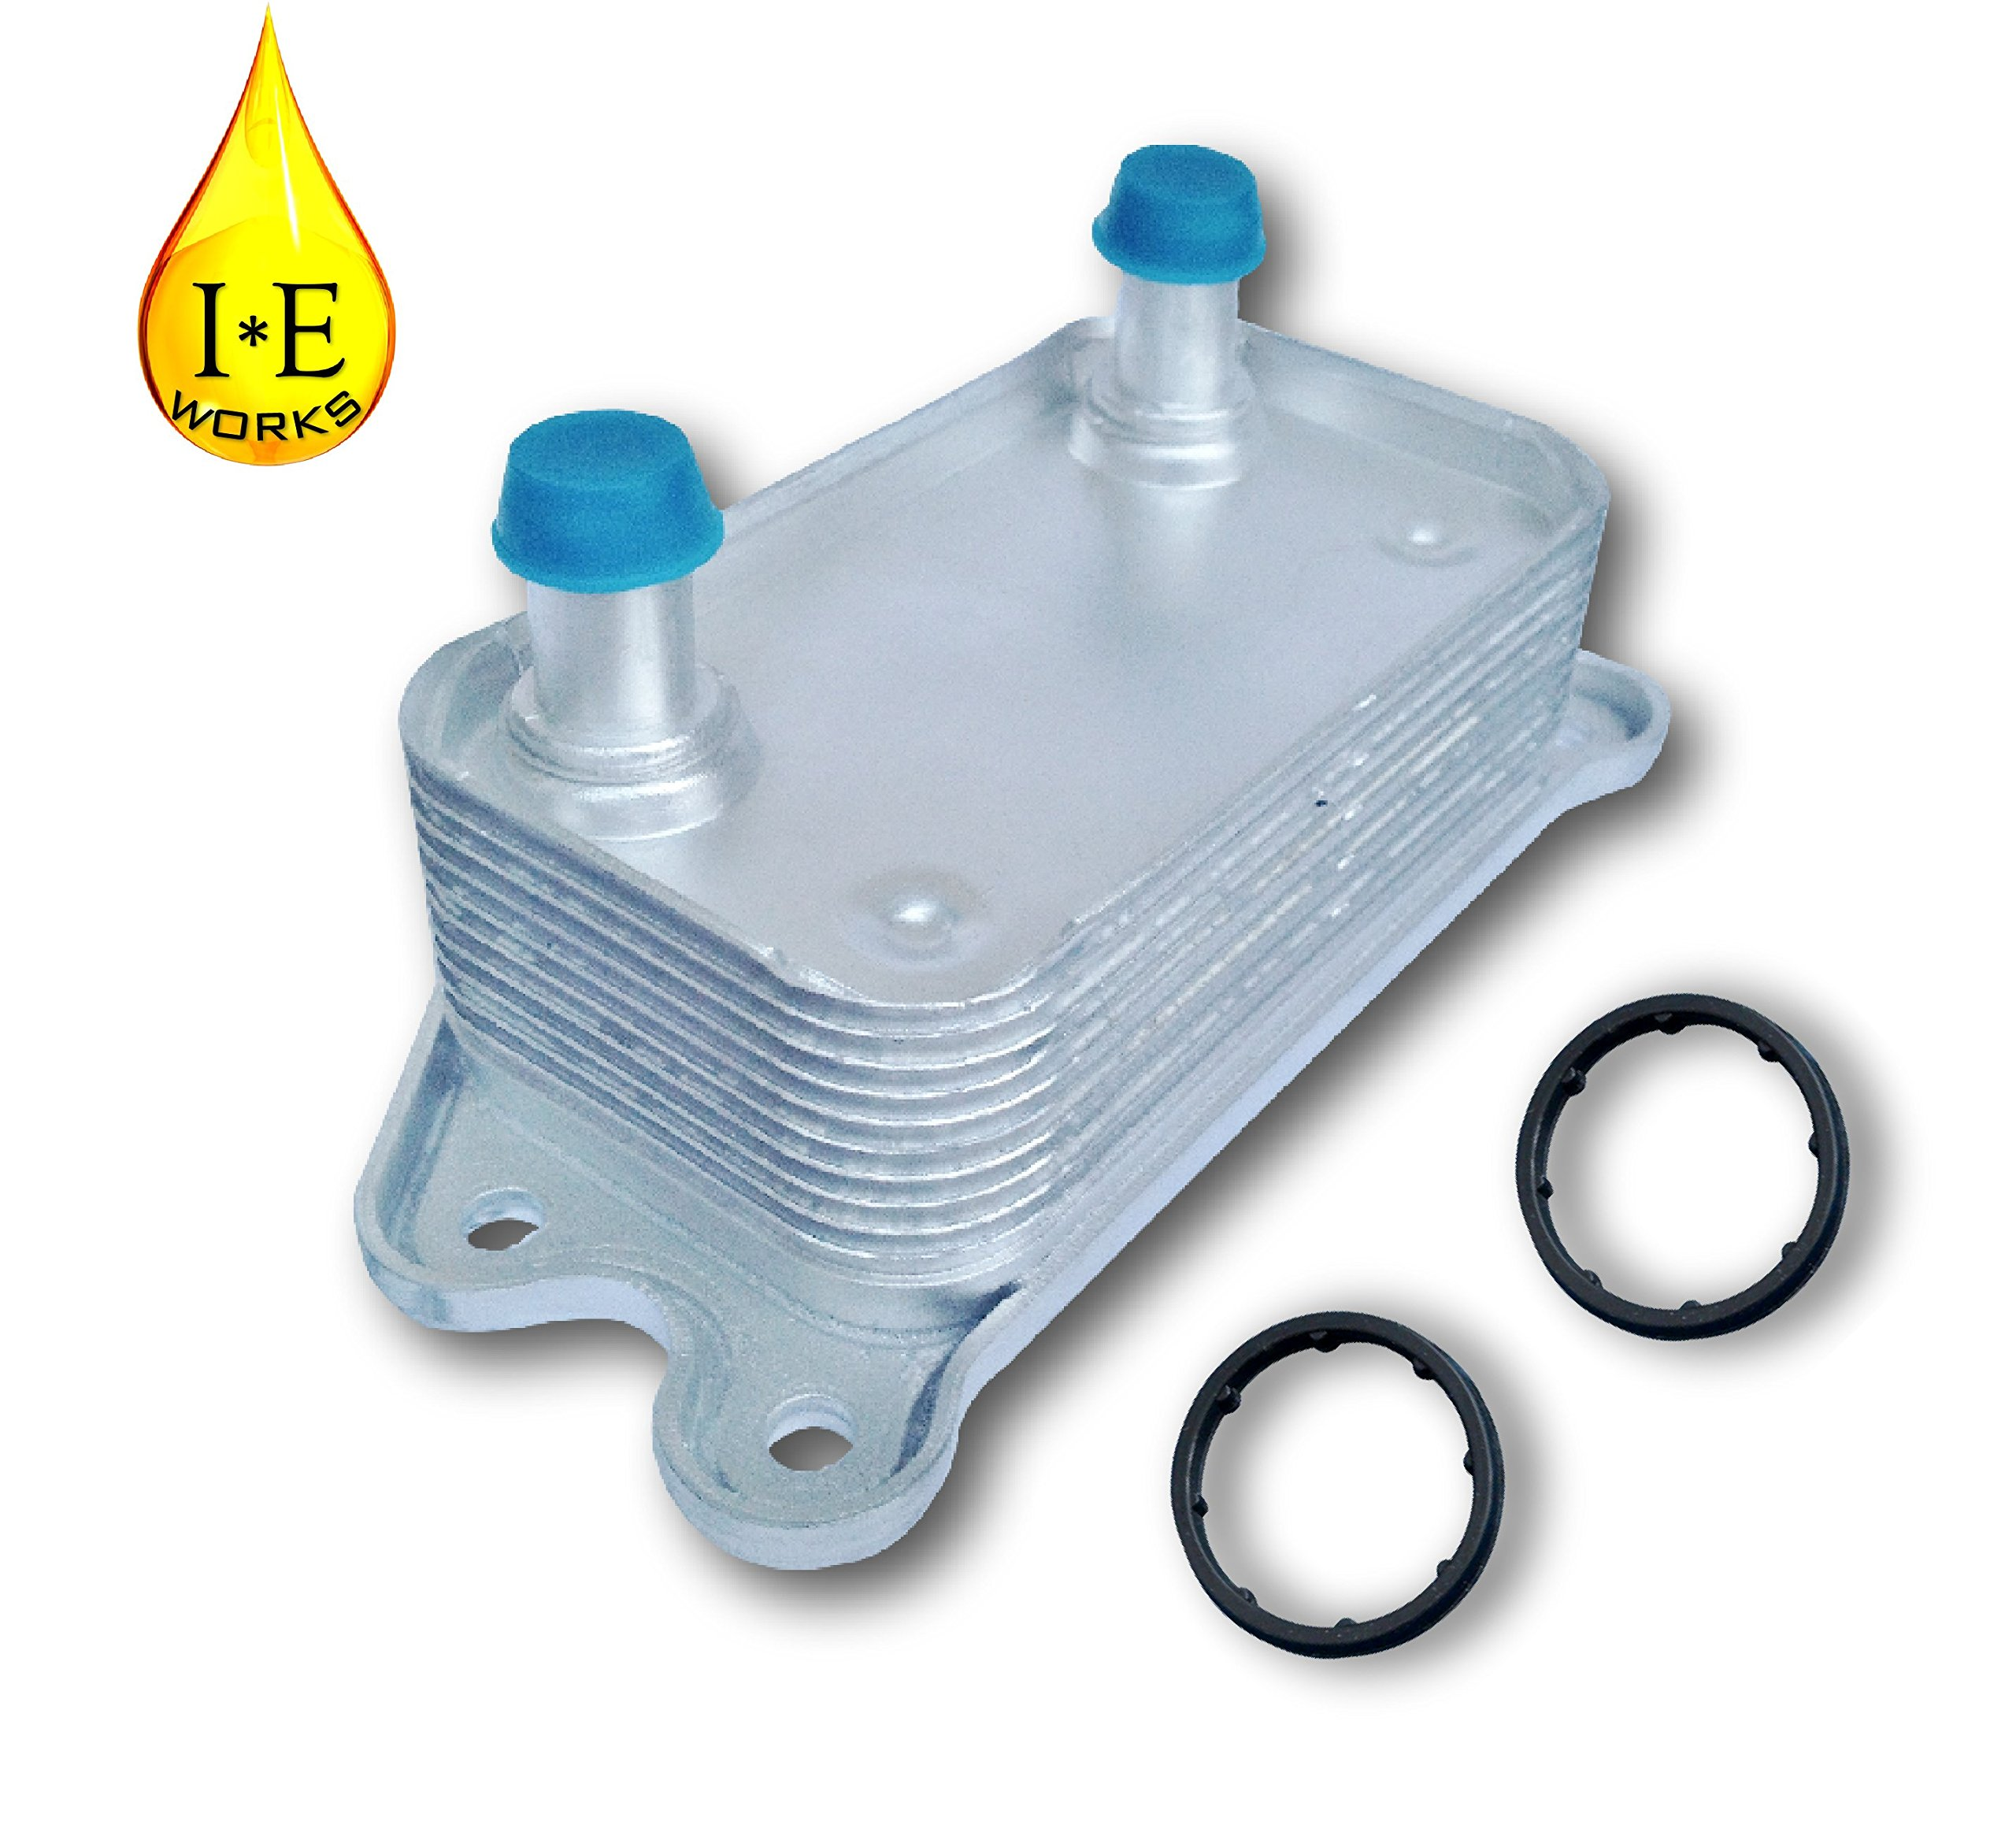 IE Works 30637966 New Engine Oil Cooler for VOLVO 2.4L 2.5L T5 with O-Rings